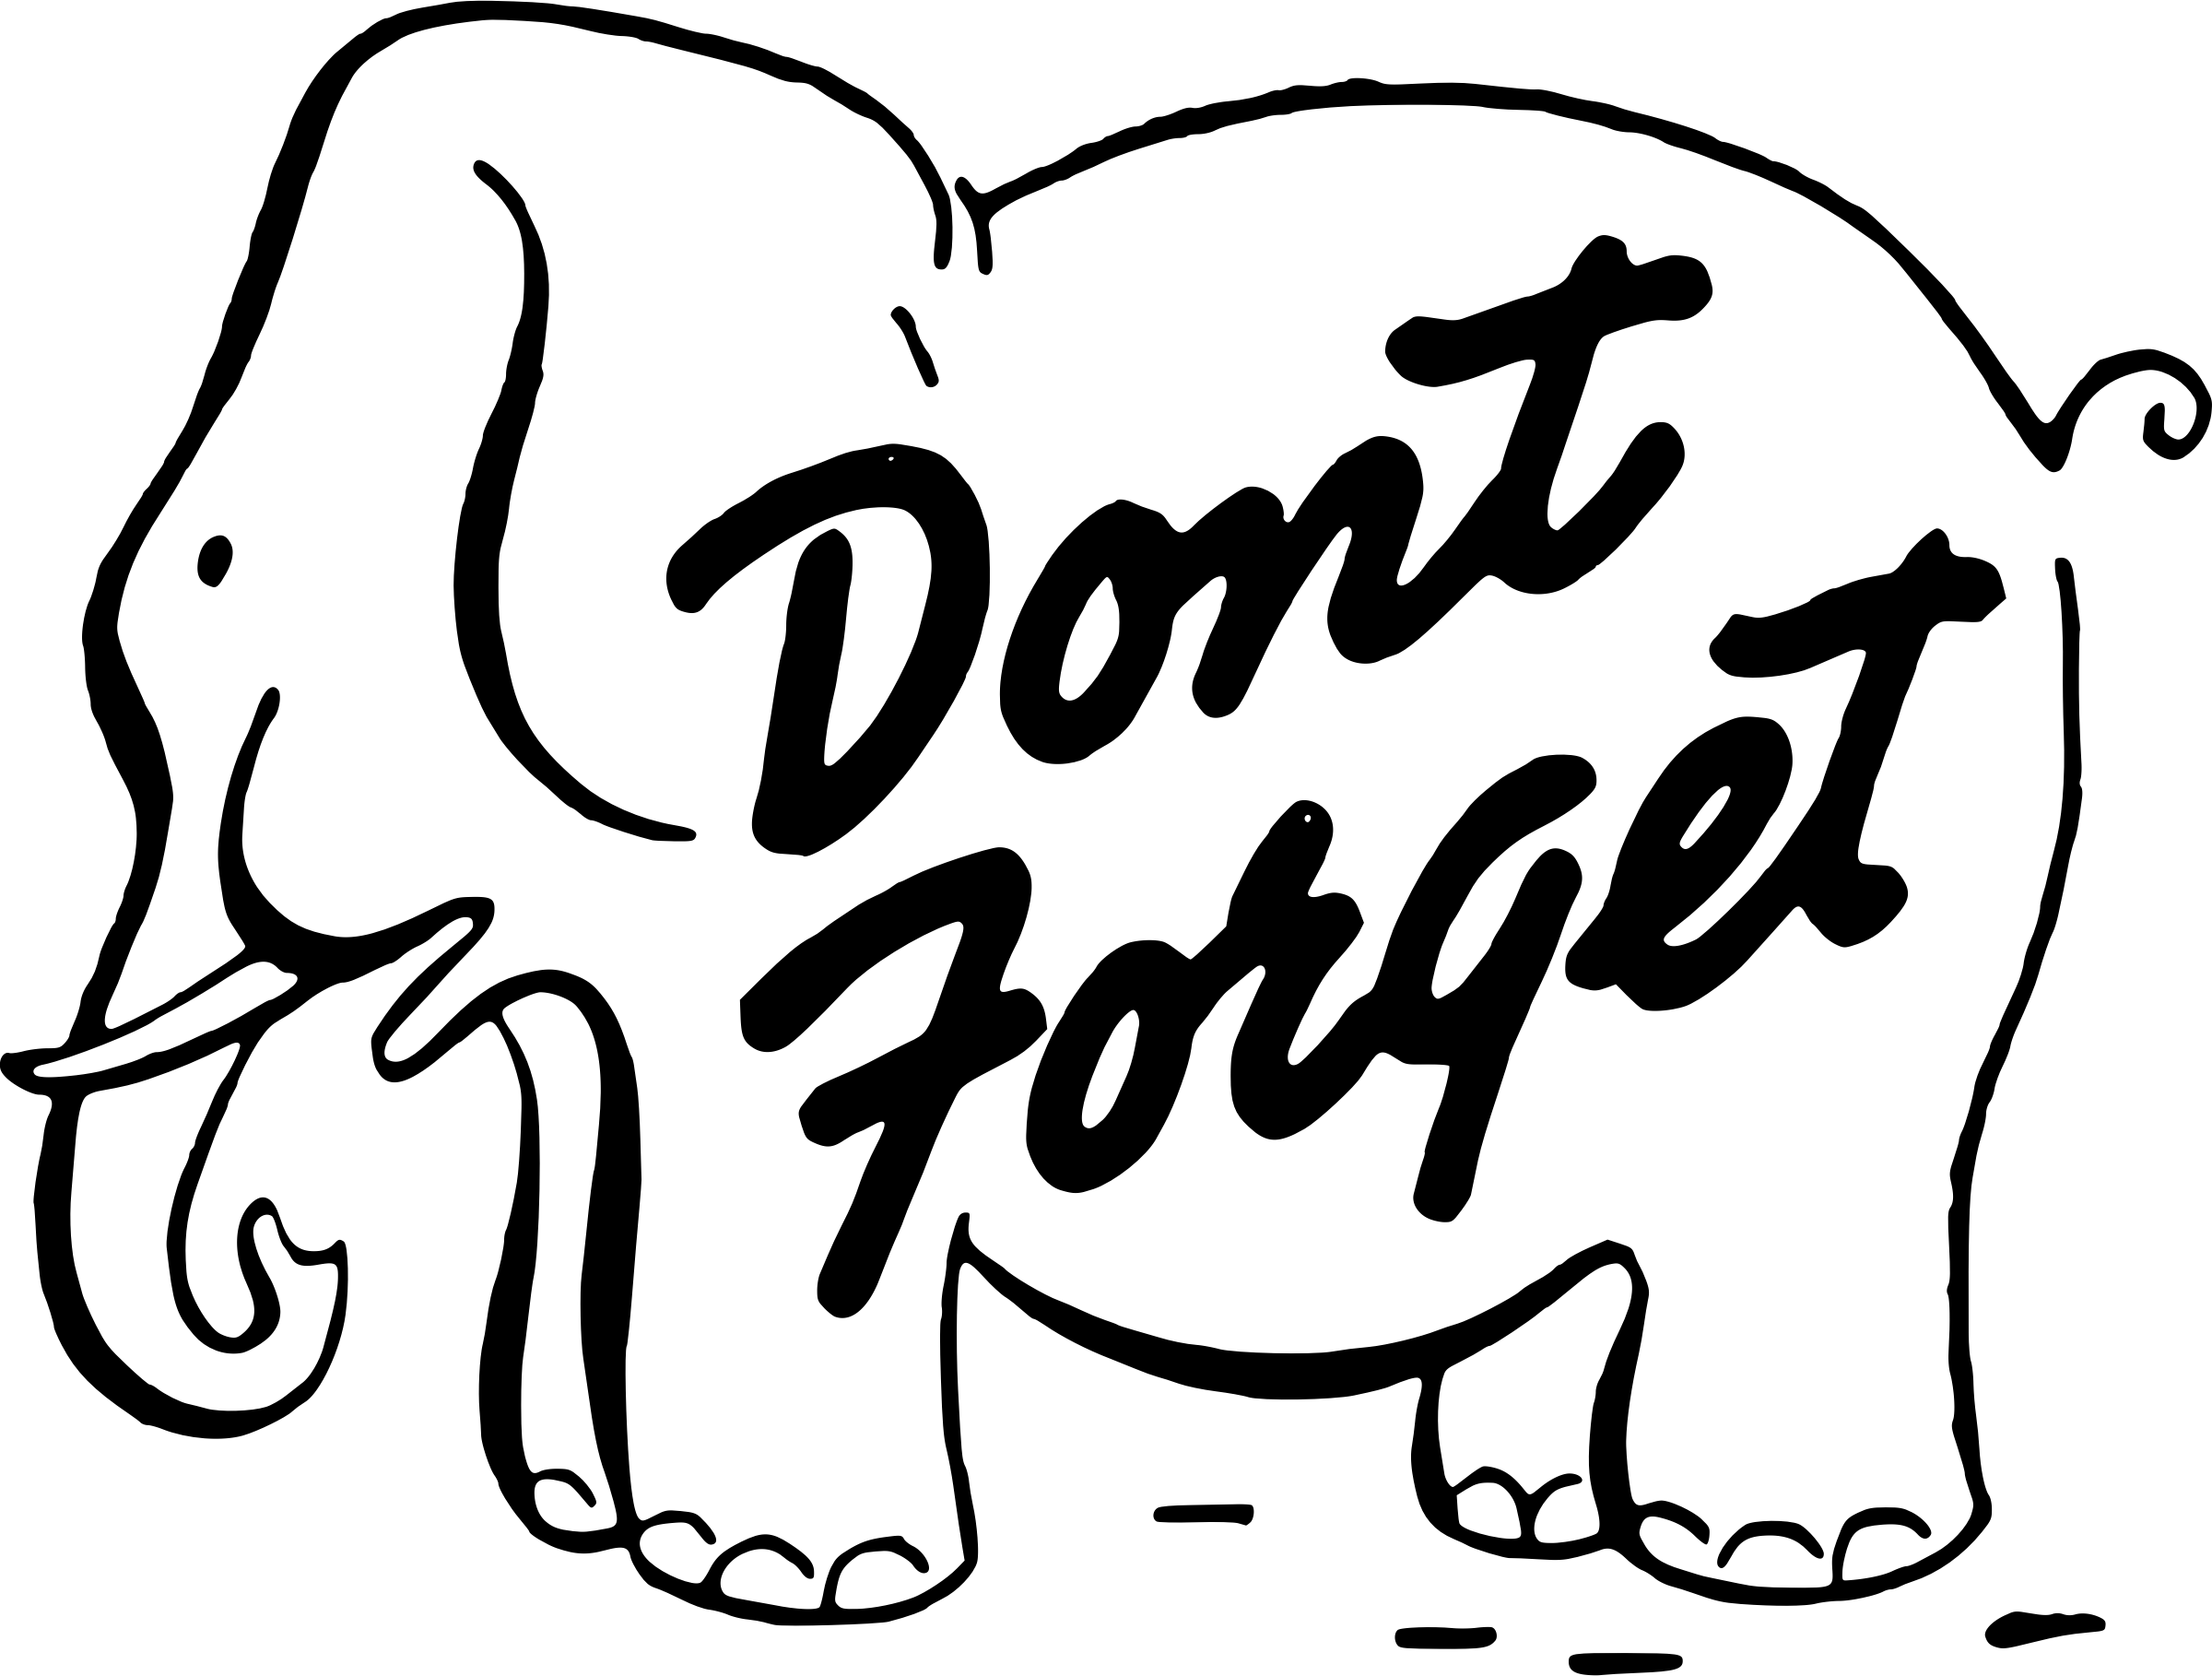 Free Don T Do Cliparts Download Free Clip Art Free Clip